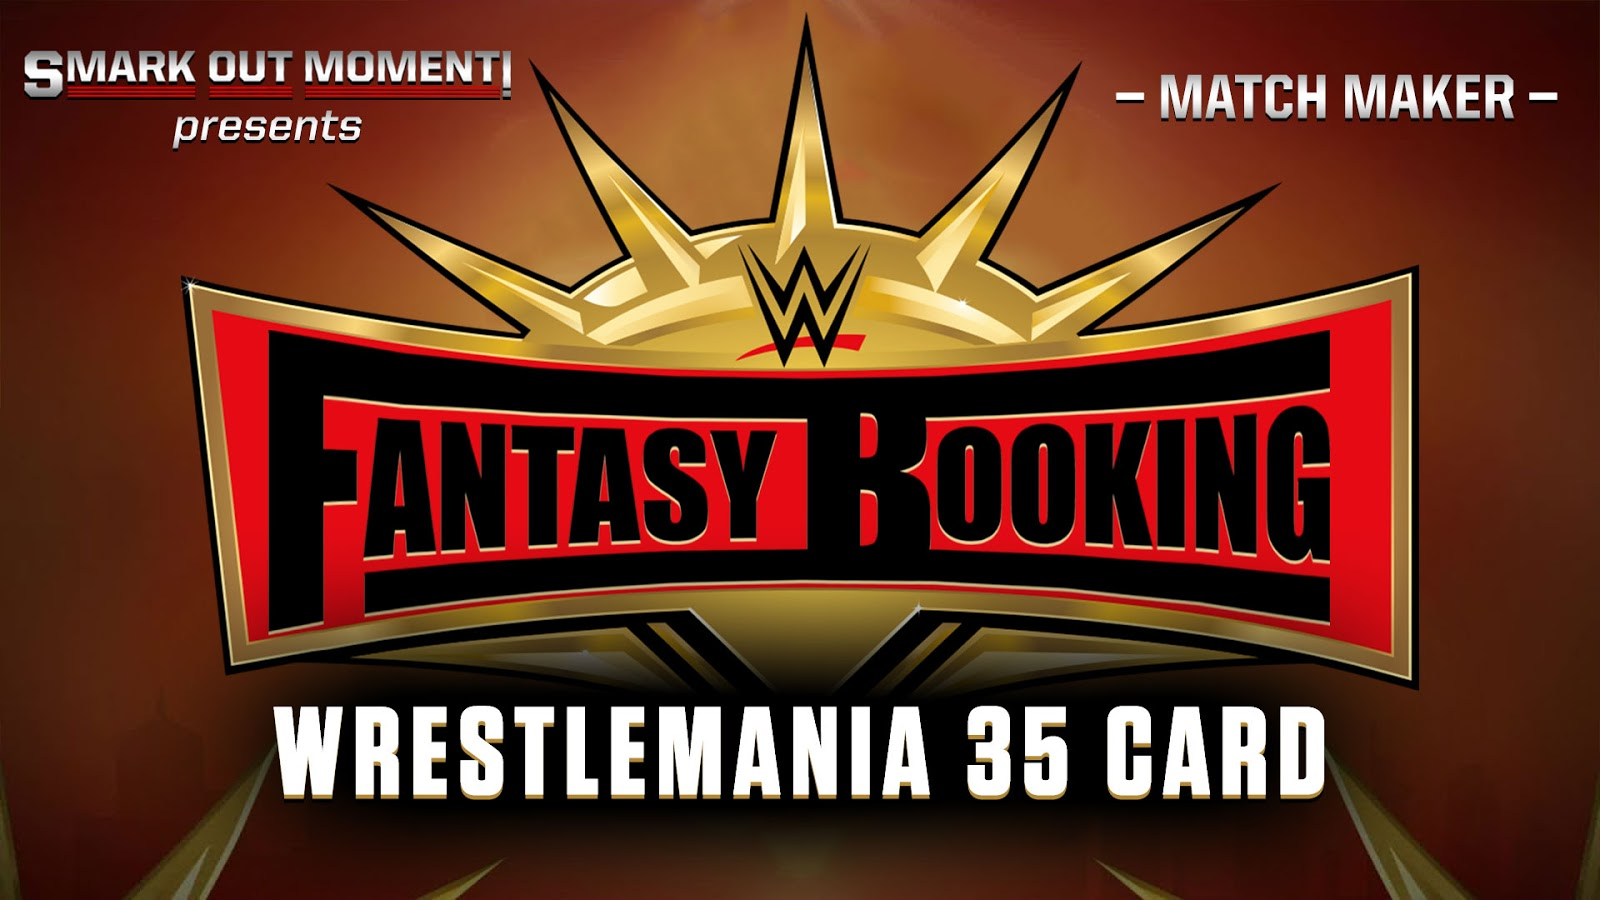 Fantasy Booking WrestleMania 35 Matches Lineup